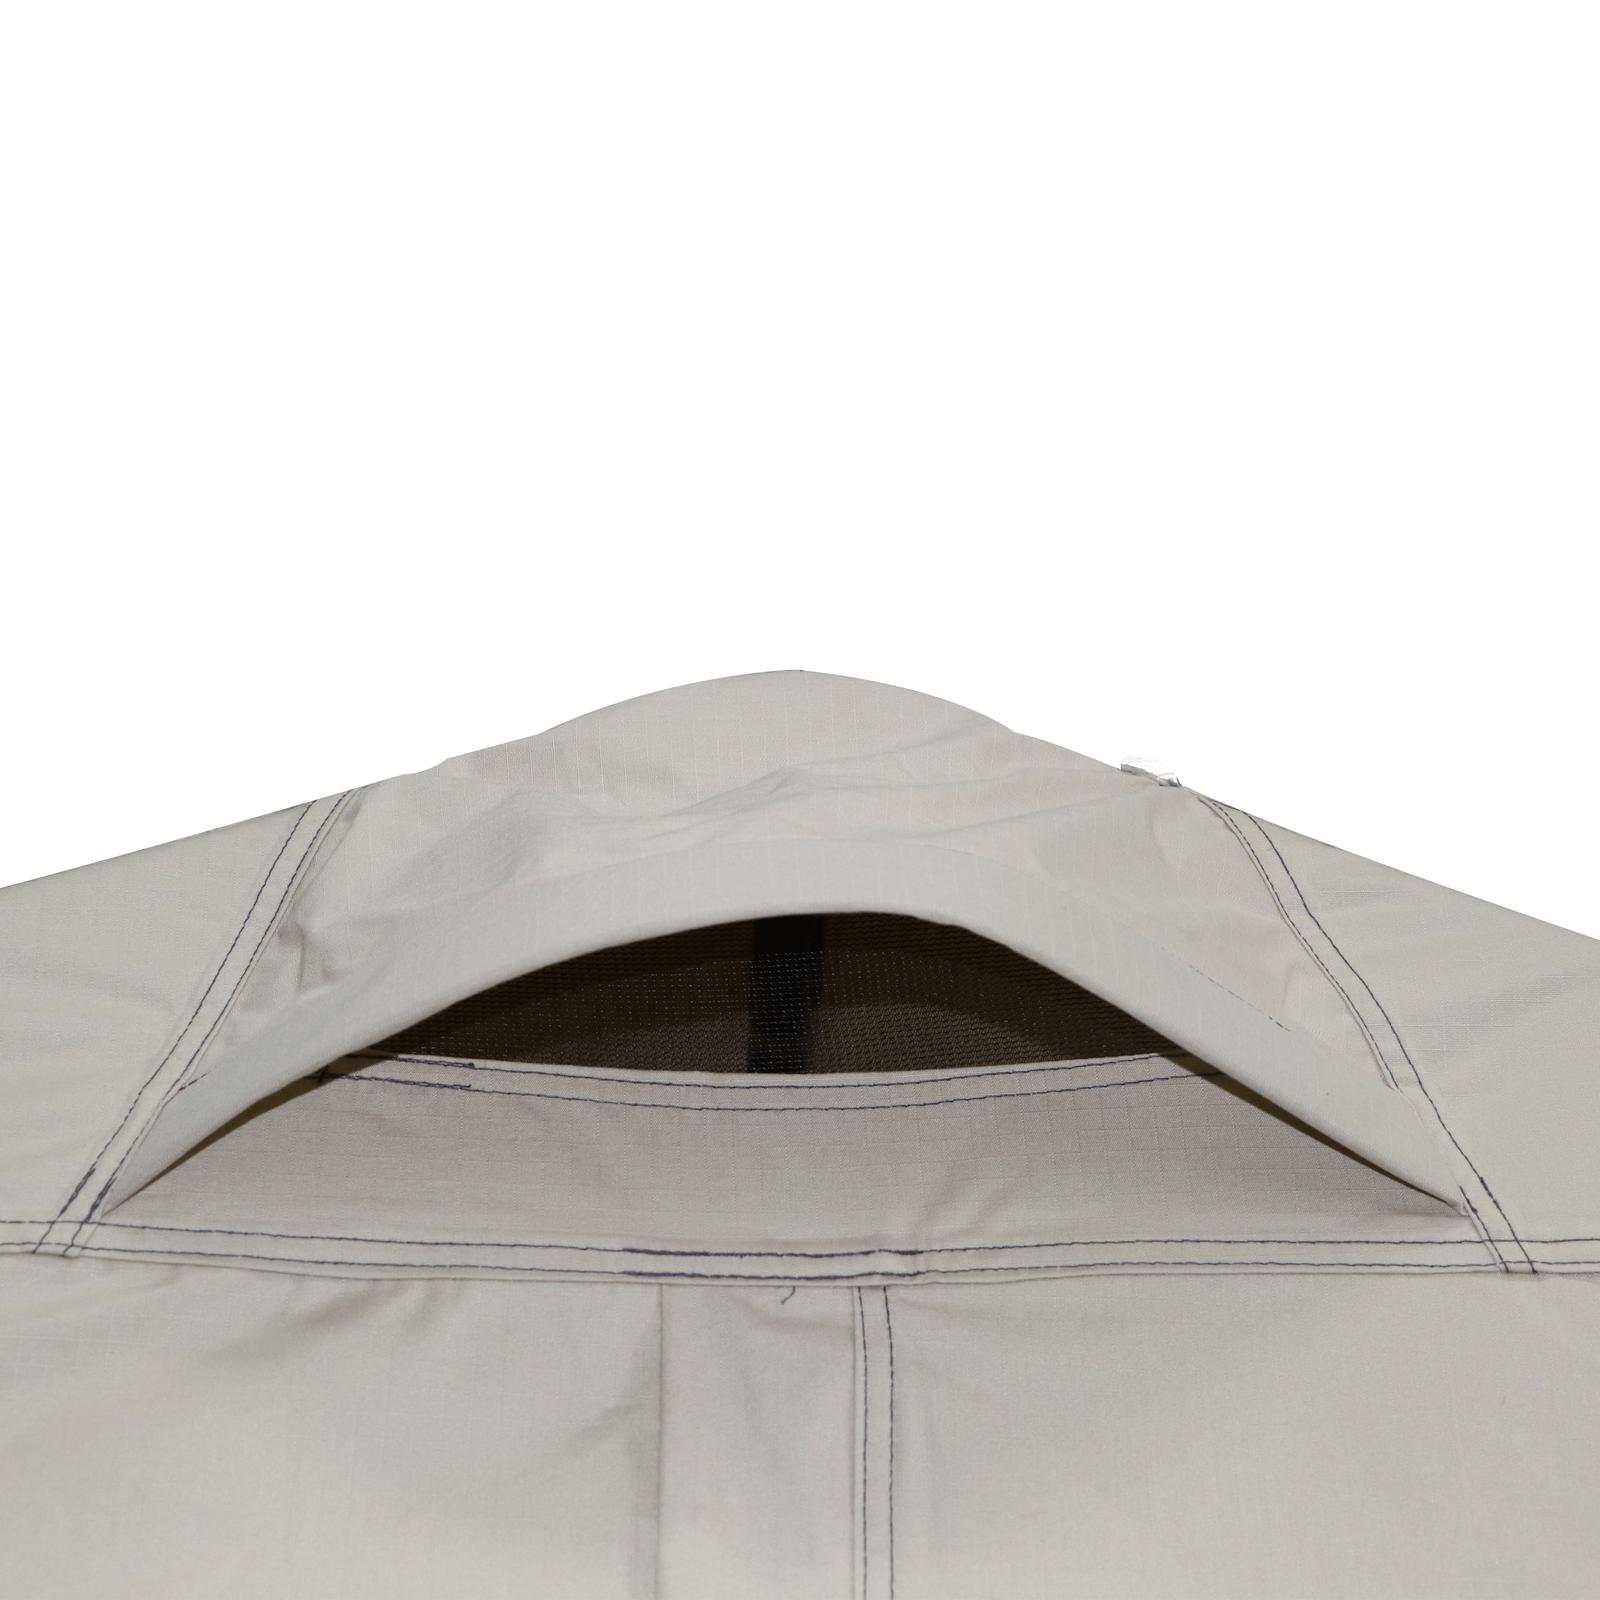 Coleman 6-Person Instant Tent Rainfly Accessory Fits 10 x 9